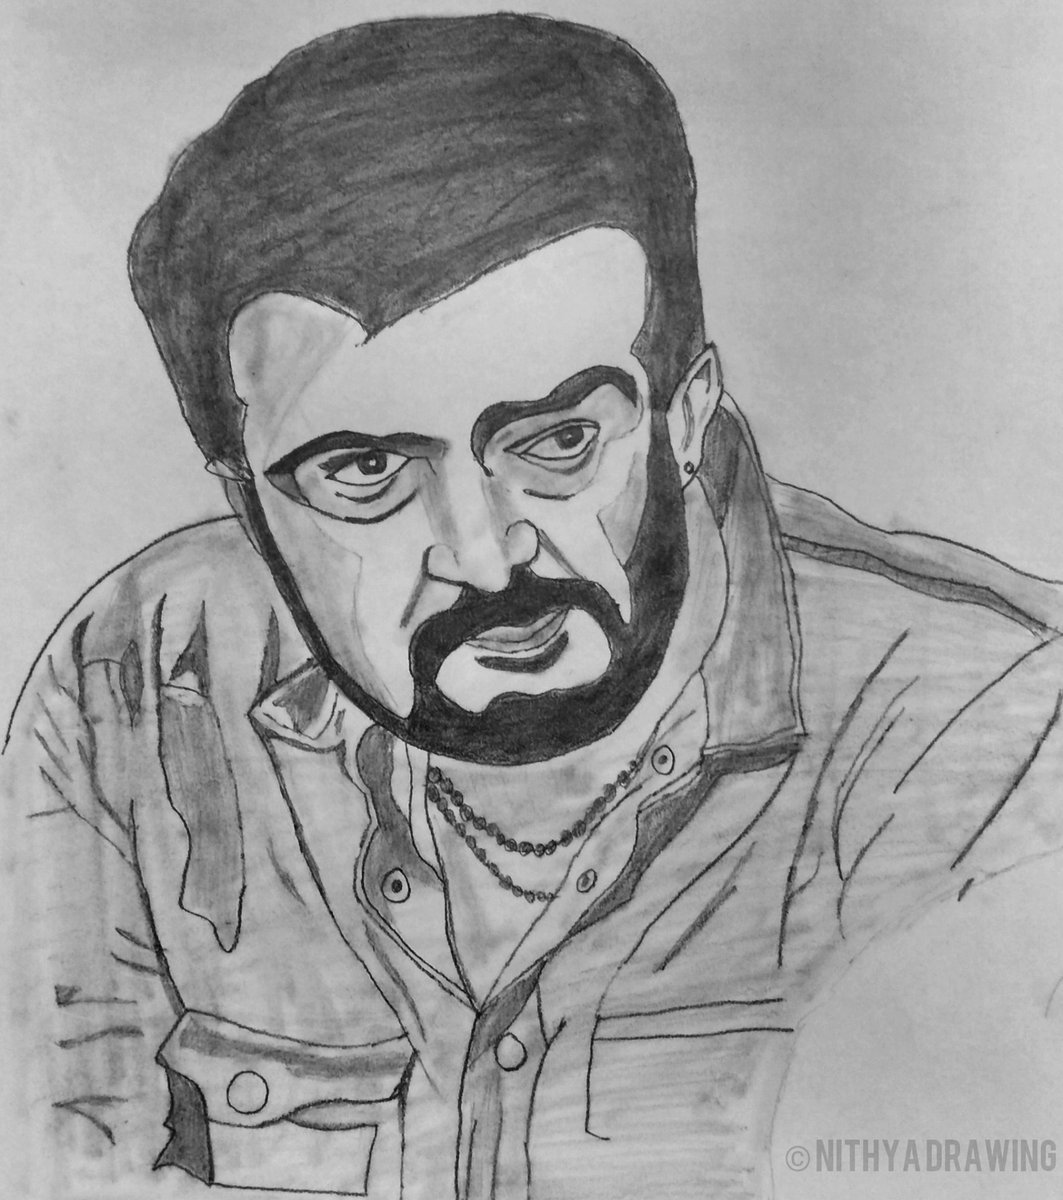 Here's the fan-made art for our ThalaAjith, Fans ♥️ Do Watch & Share Max!!  Video Link - https://t.co/uwQhqVITZC  Done by @NithyaDrawing  #Valimai #ThalaAjith #NithyaDrawing @SNithyaOfficial #ThalaAjithDrawing https://t.co/aOMlVBviOl